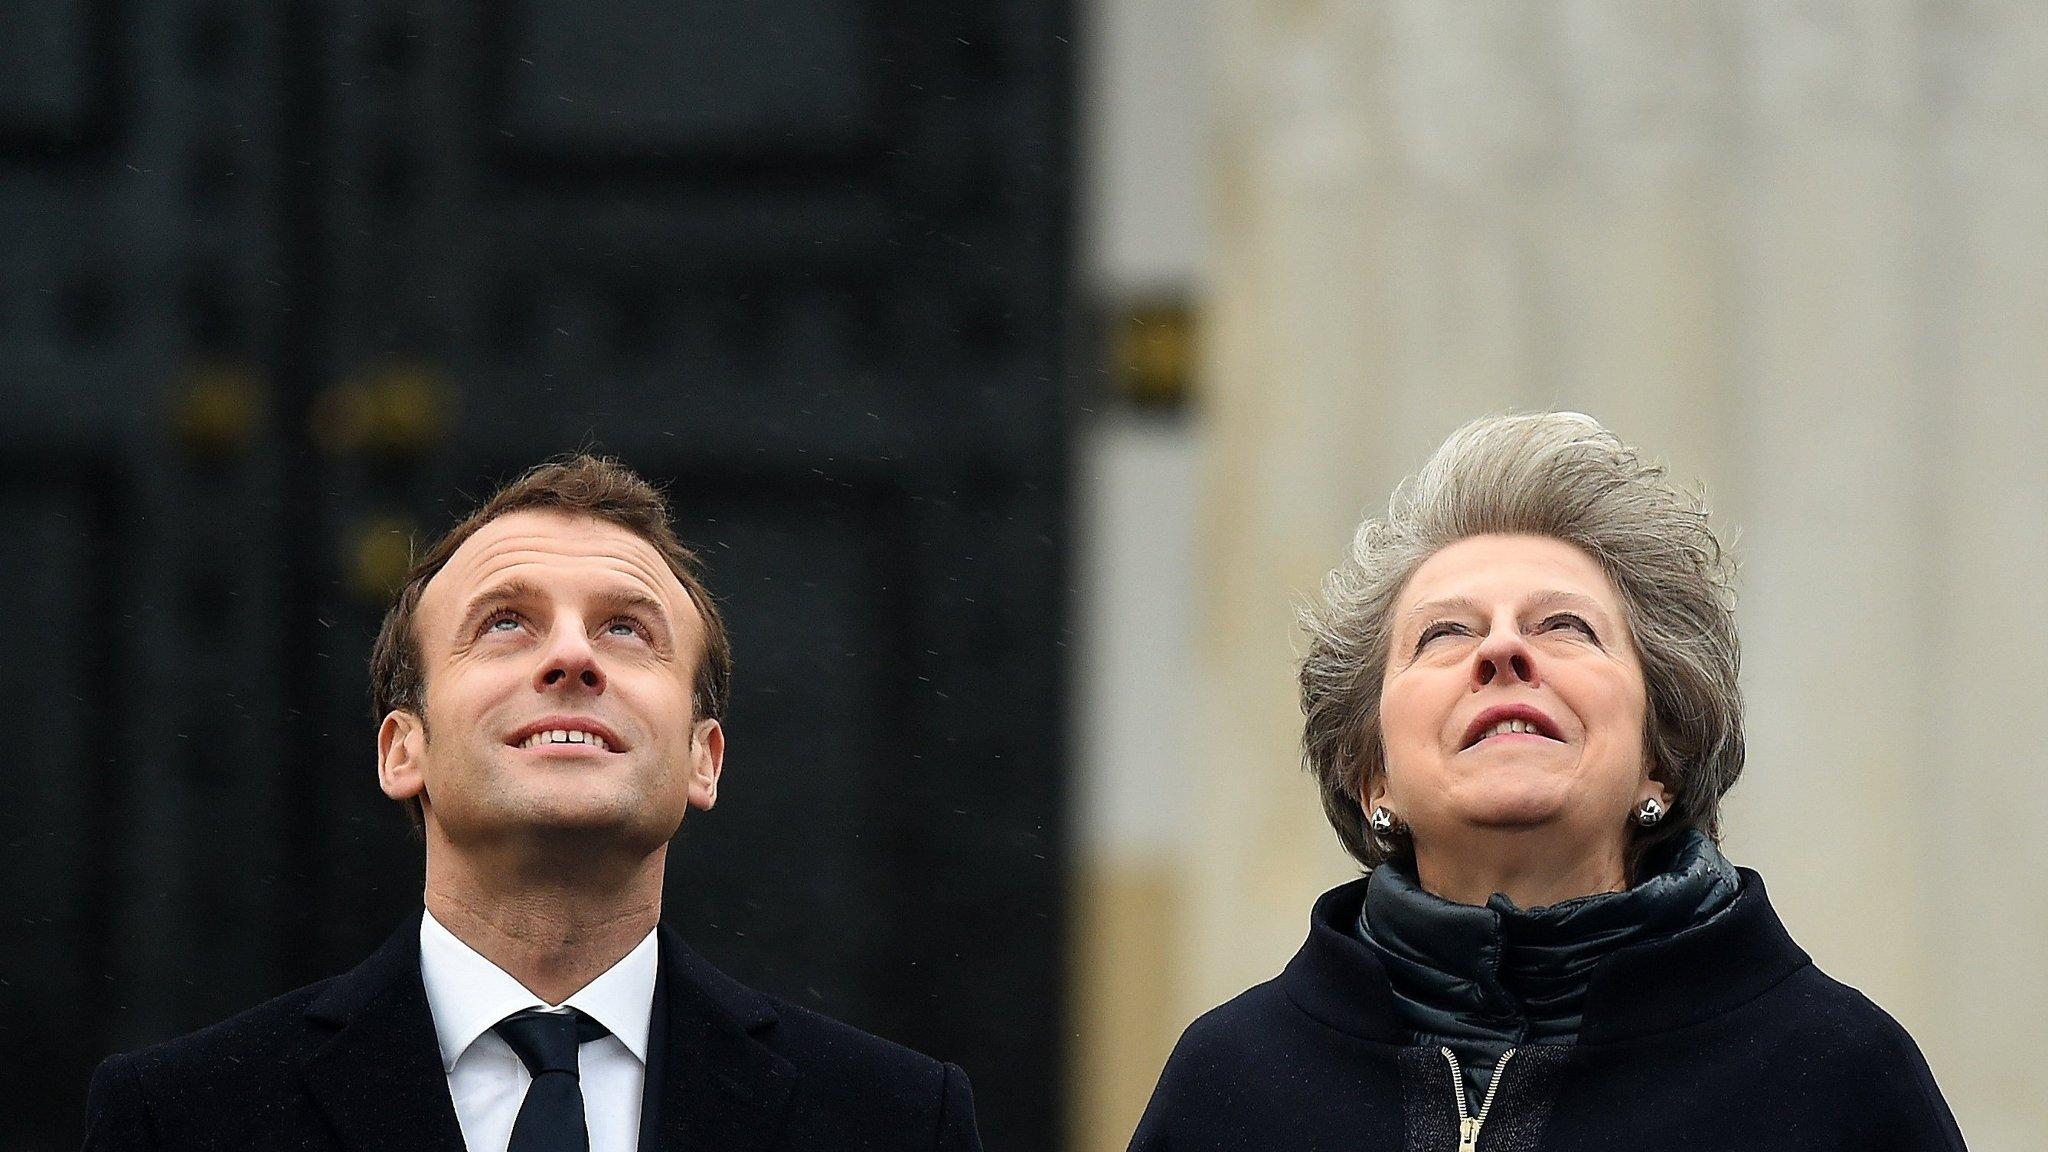 Entente kept cordiale as May and Macron test relationship